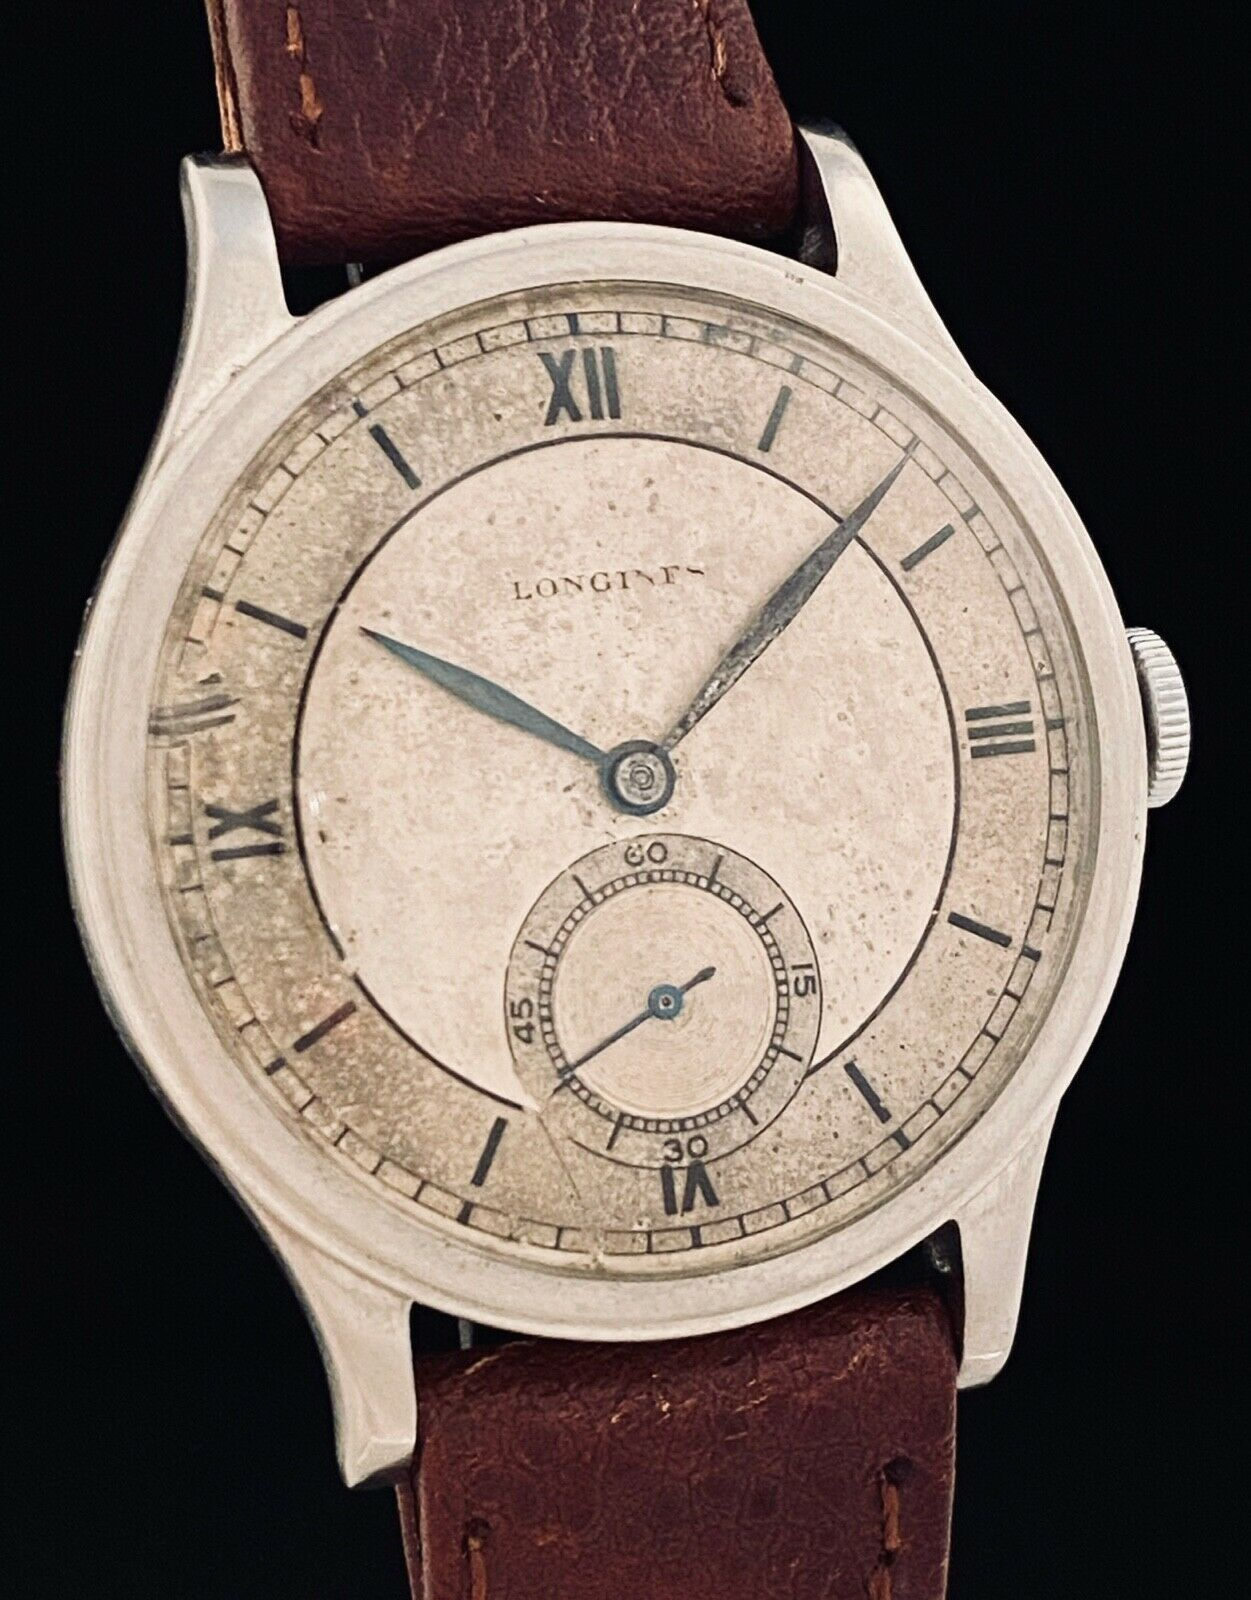 AWESOME 35mm LONGINES ArT DeCO STAINLESS Steel SECTOR DIAL Vintage WATCH 12.68z! - watch picture 1